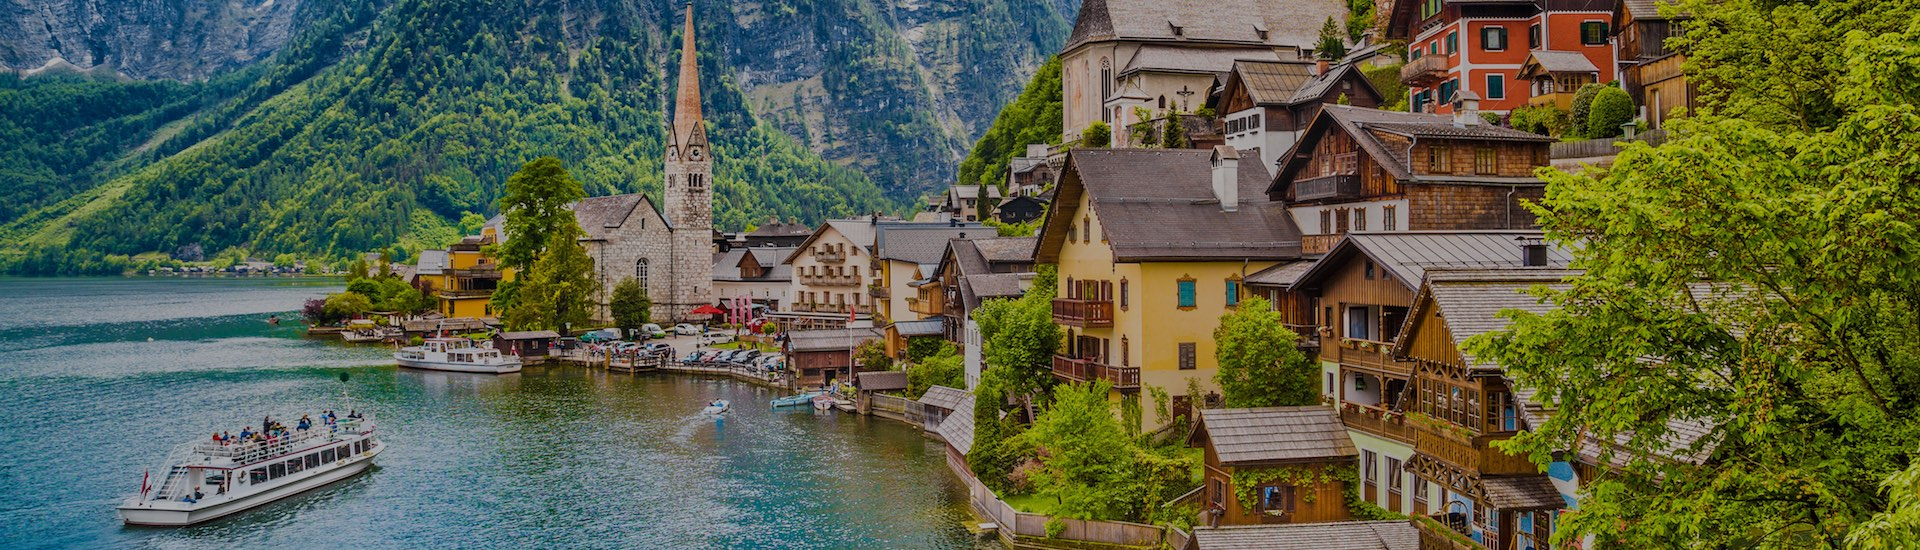 Hostels in Austria